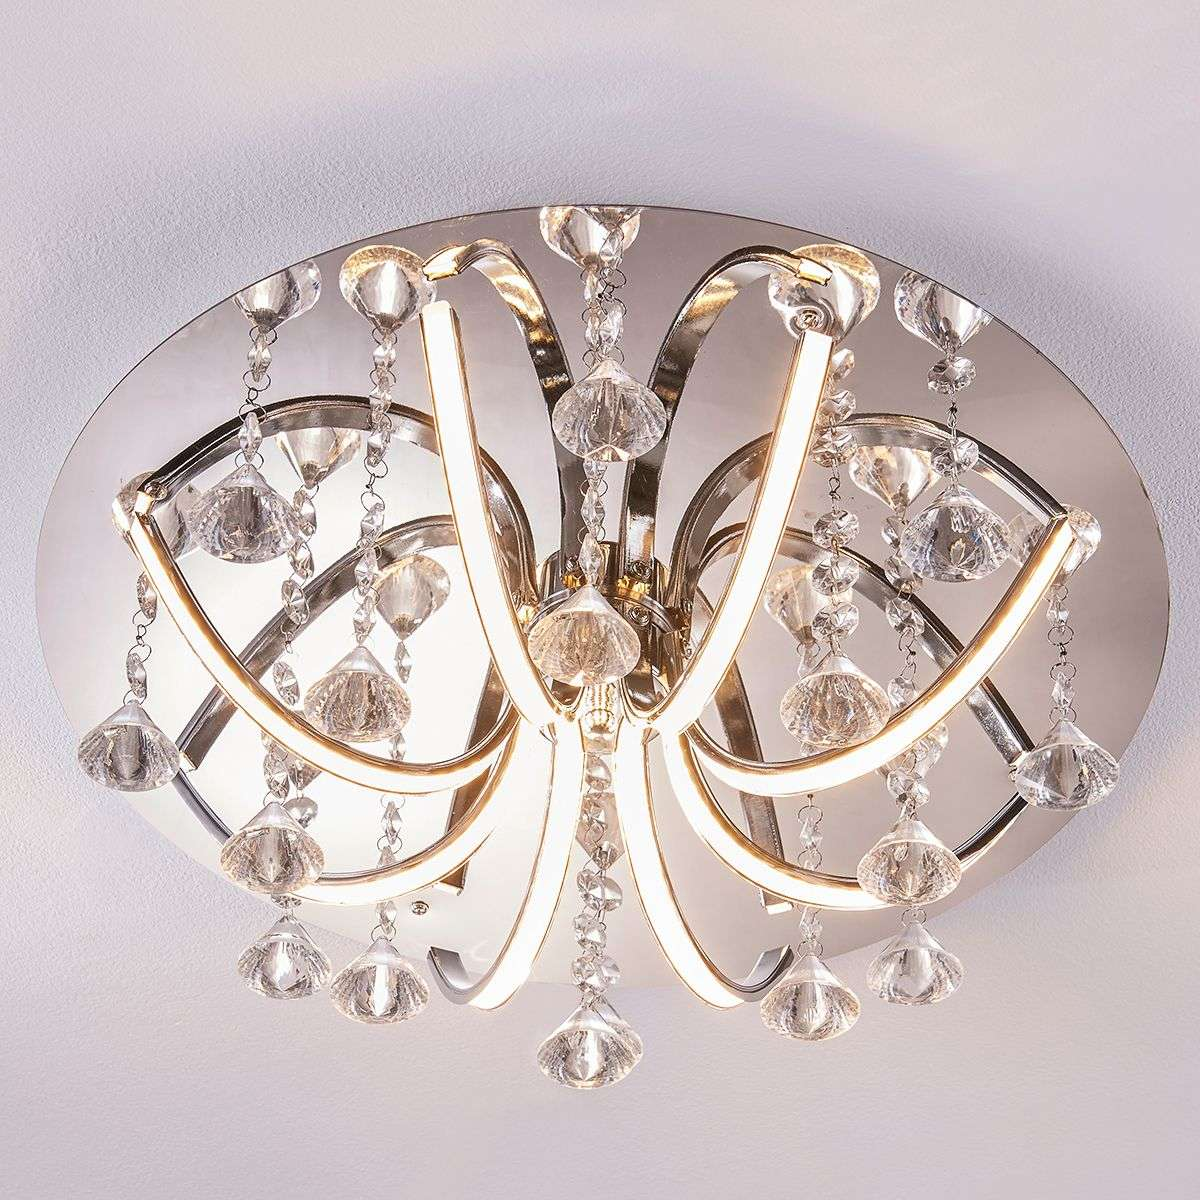 Decorative led ceiling light amy lights decorative led ceiling light amy 9620788 310 aloadofball Choice Image